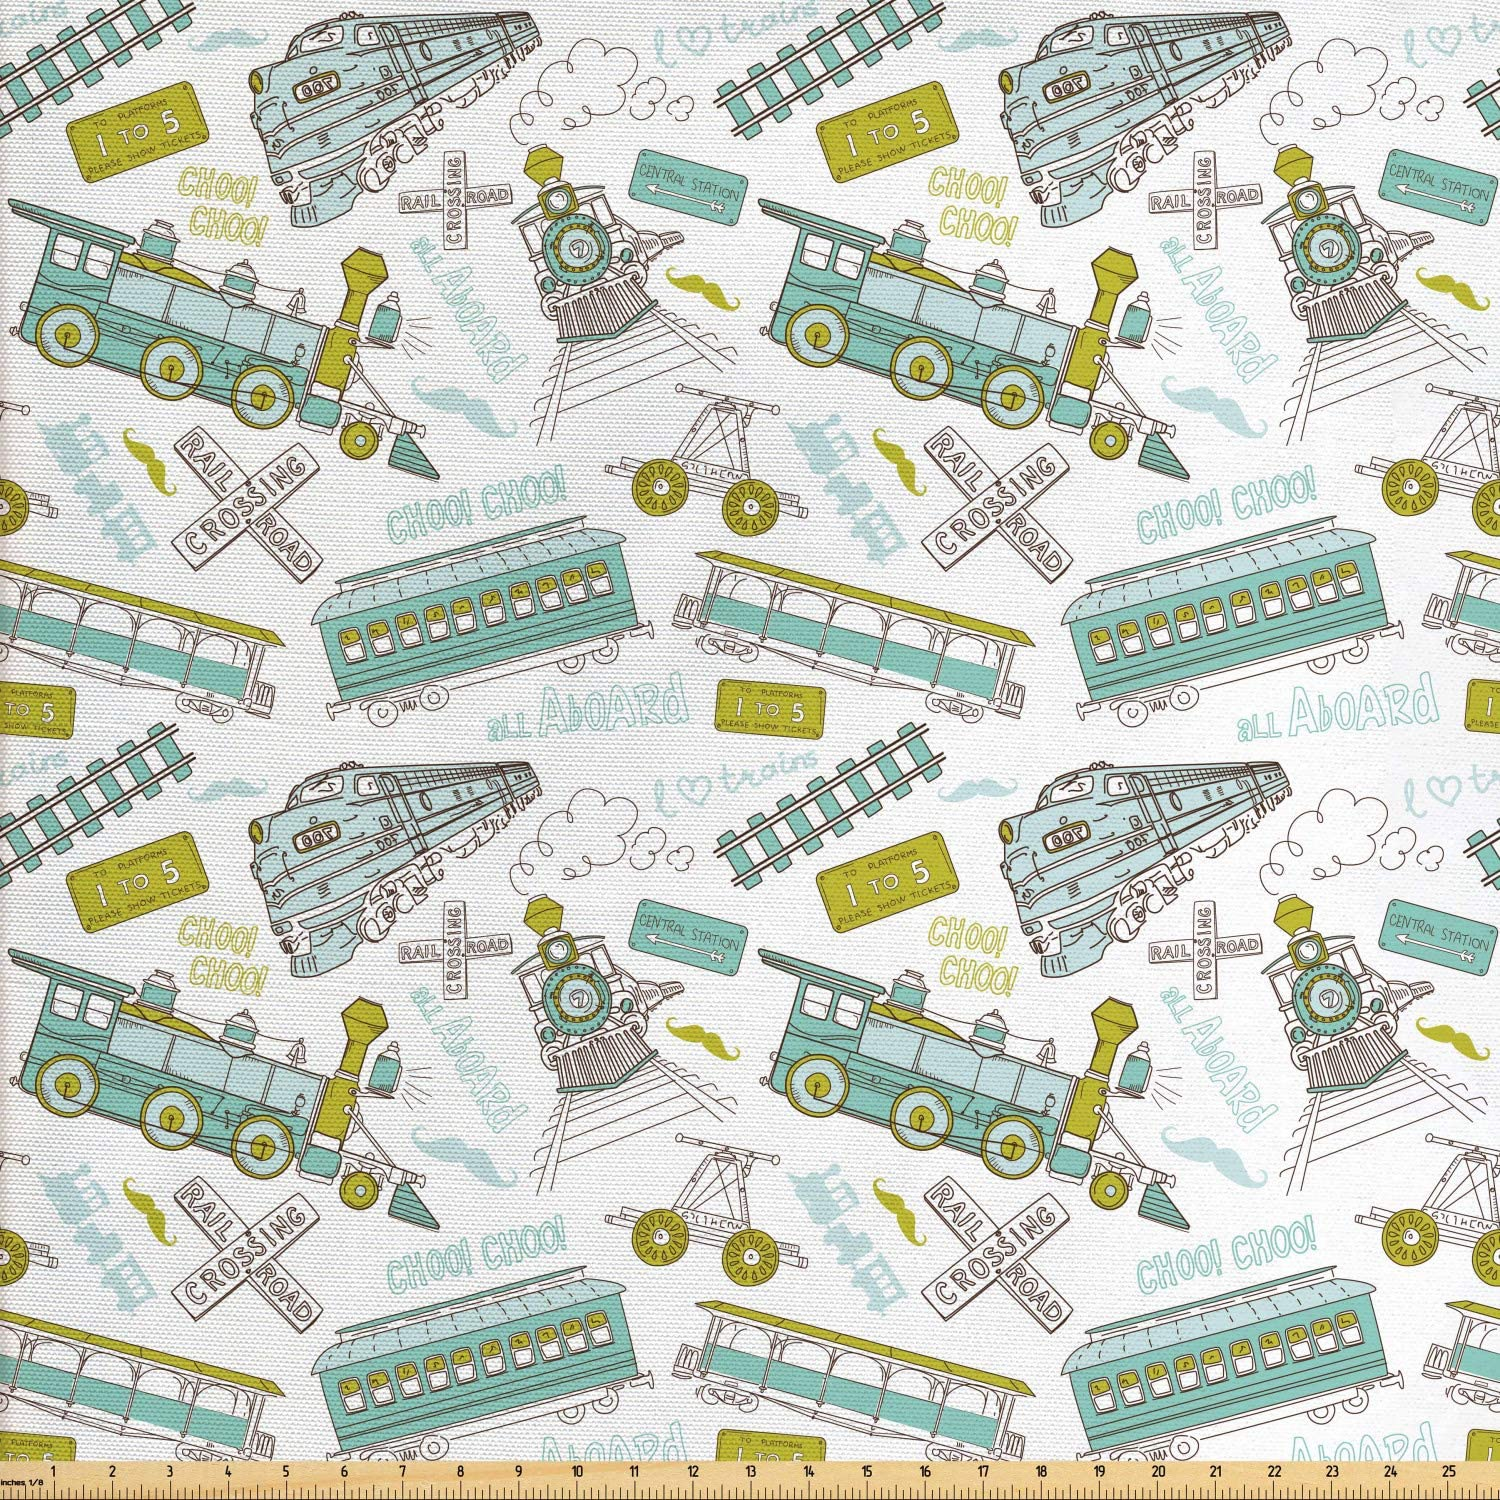 Ambesonne Steam Engine Fabric by The Yard, Choo Choo Train Kids Boy Pattern Blue Green Number Plate Vintage, Decorative Fabric for Upholstery and Home Accents, 3 Yards, Apple Green